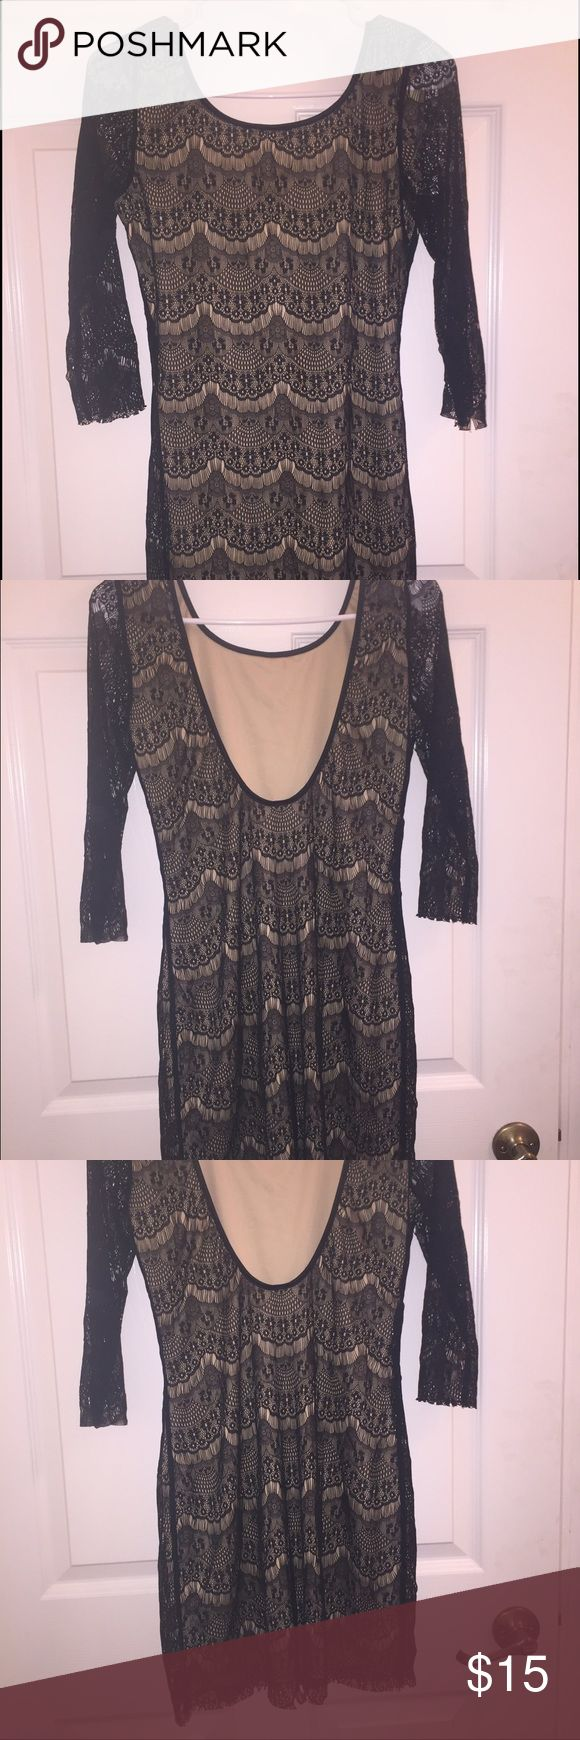 BOGO Black and Tan lace dress All items in my closet are buy one get one 50% off❗️ Put in comments which items you would like 😊 cheaper item will get discount🐱Beautiful dress will plunging back and lace sleeves Dresses Midi